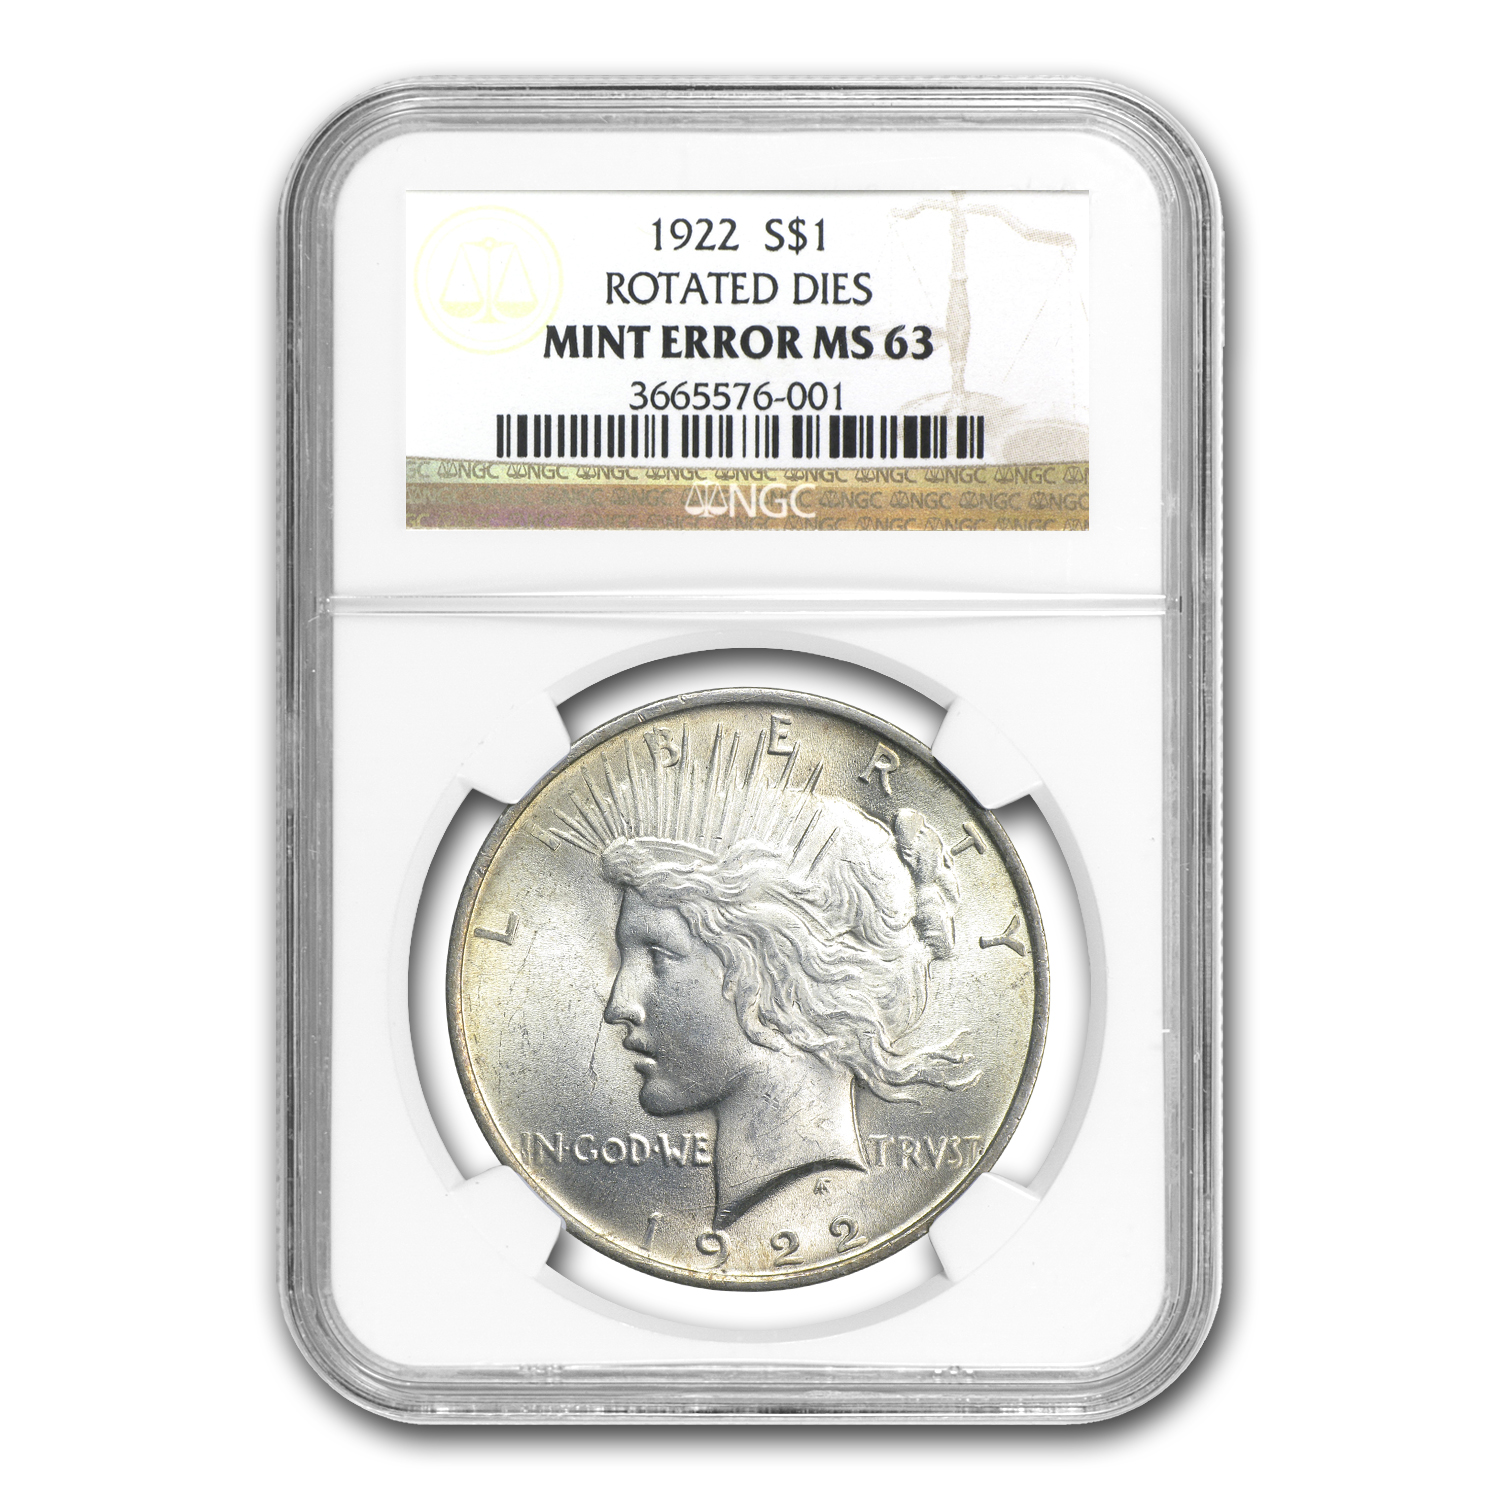 1922 Peace Dollar MS-63 NGC 45 Degree CW Rotated Rev Mint Error